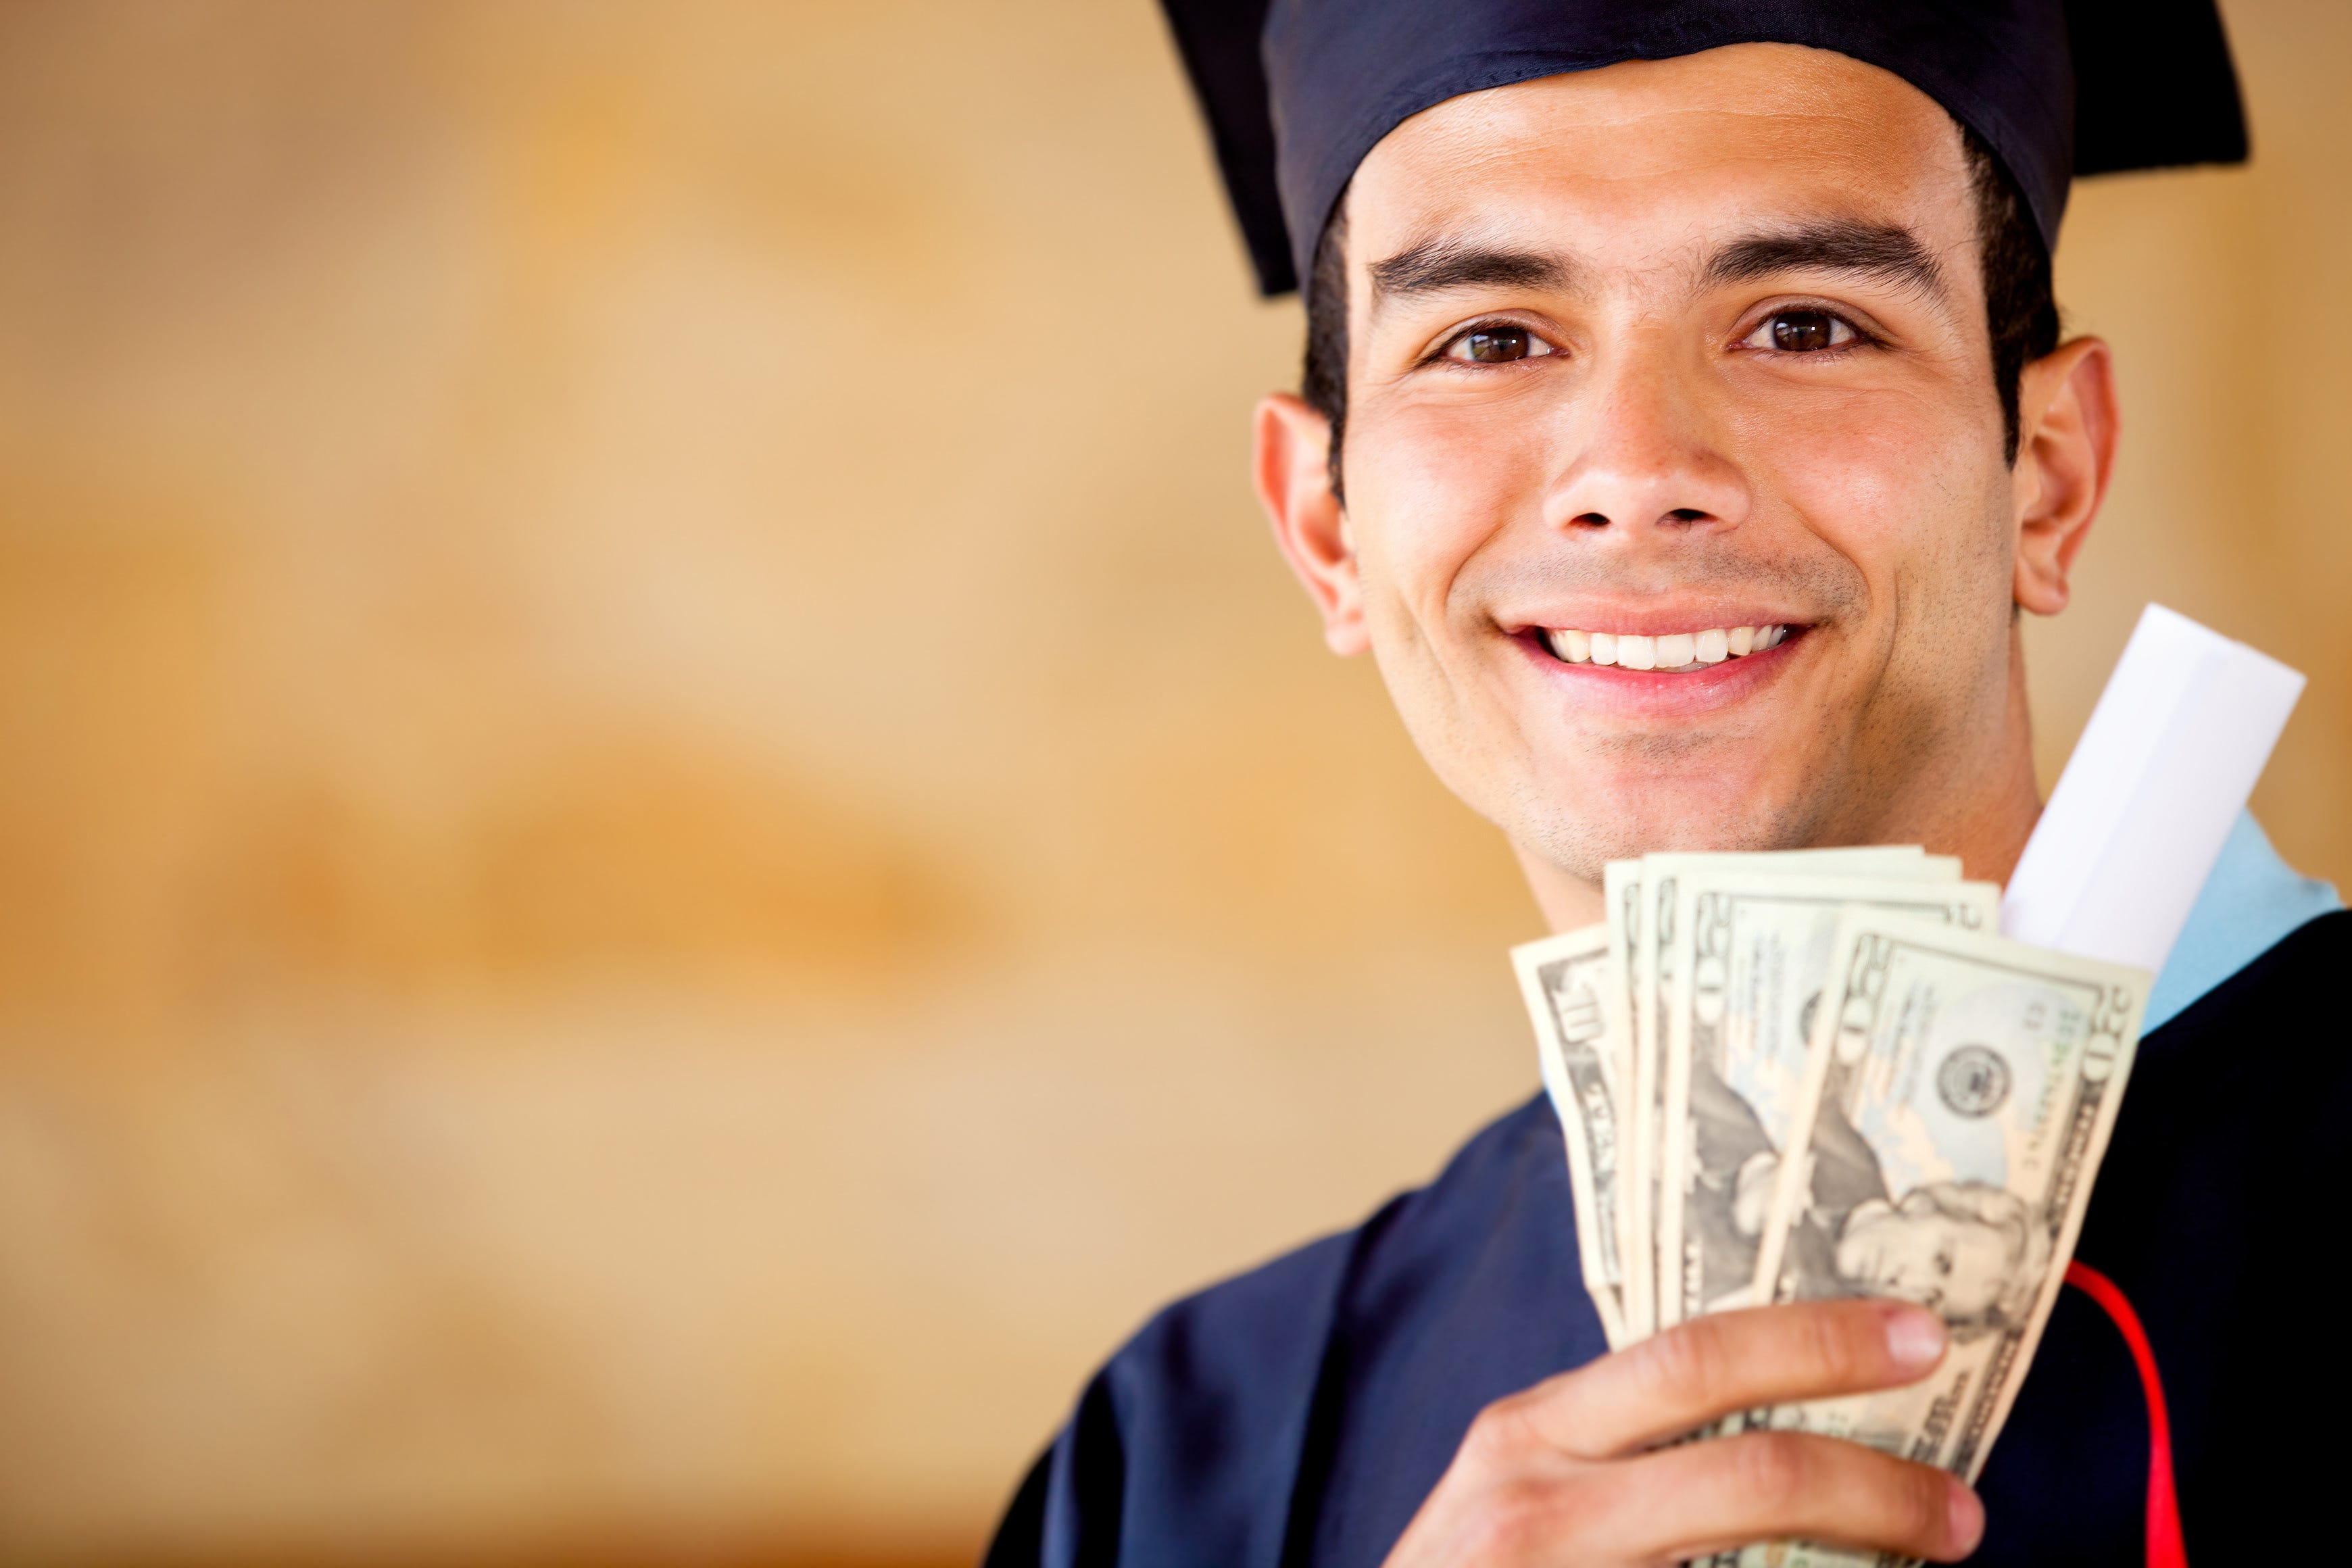 Class of 2016: How you can become a multimillionaire